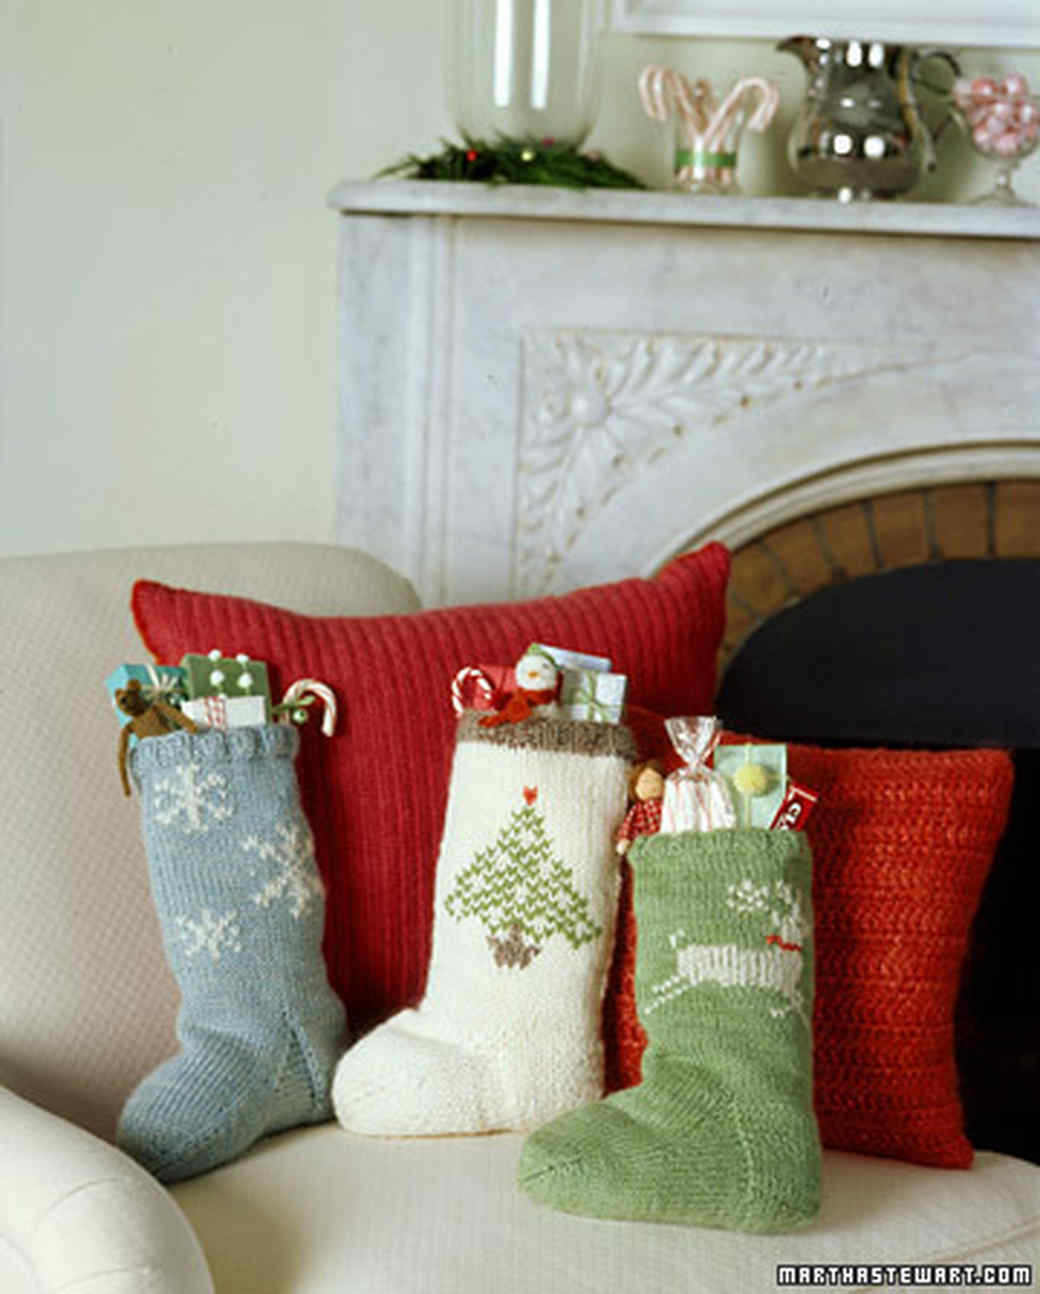 Knitted Christmas Stockings.Sock Pattern For Knit Christmas Stockings Martha Stewart